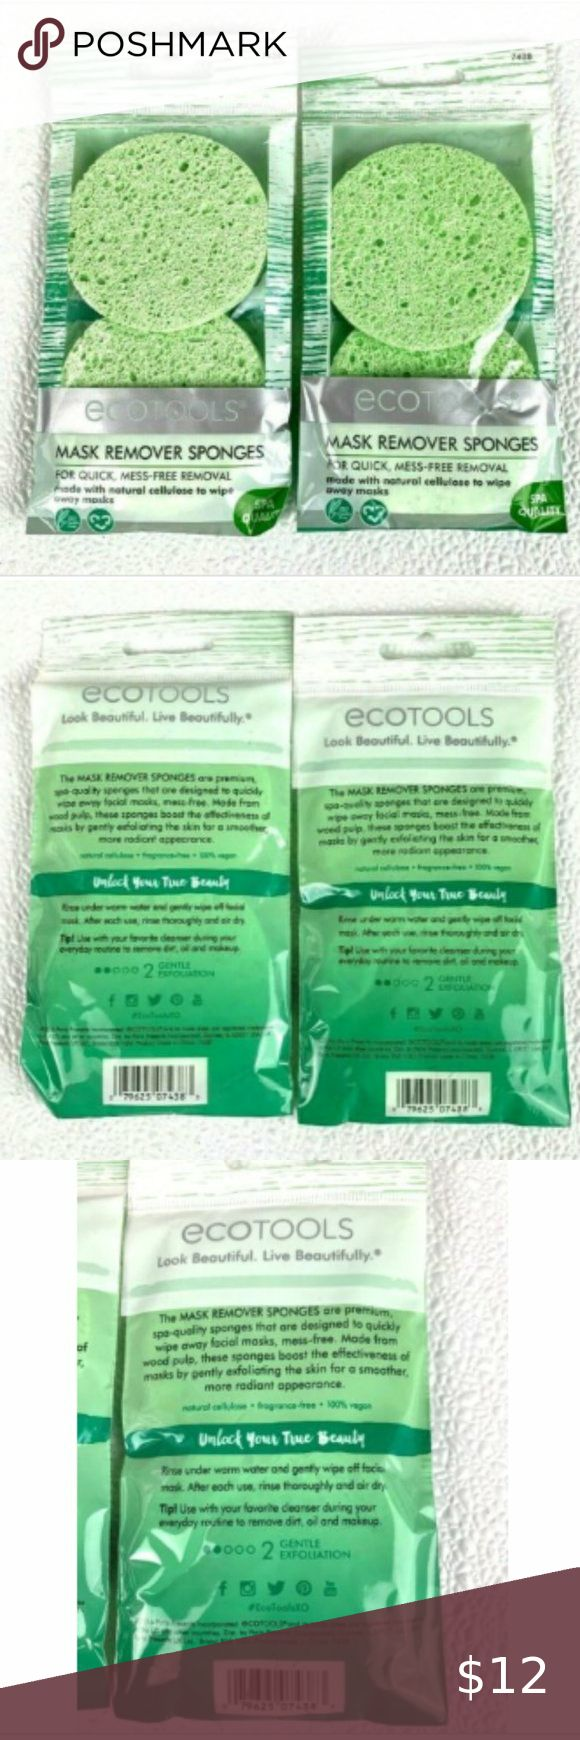 4/25 Eco Tools Mask Remover Exfoliating Sponges in 2020